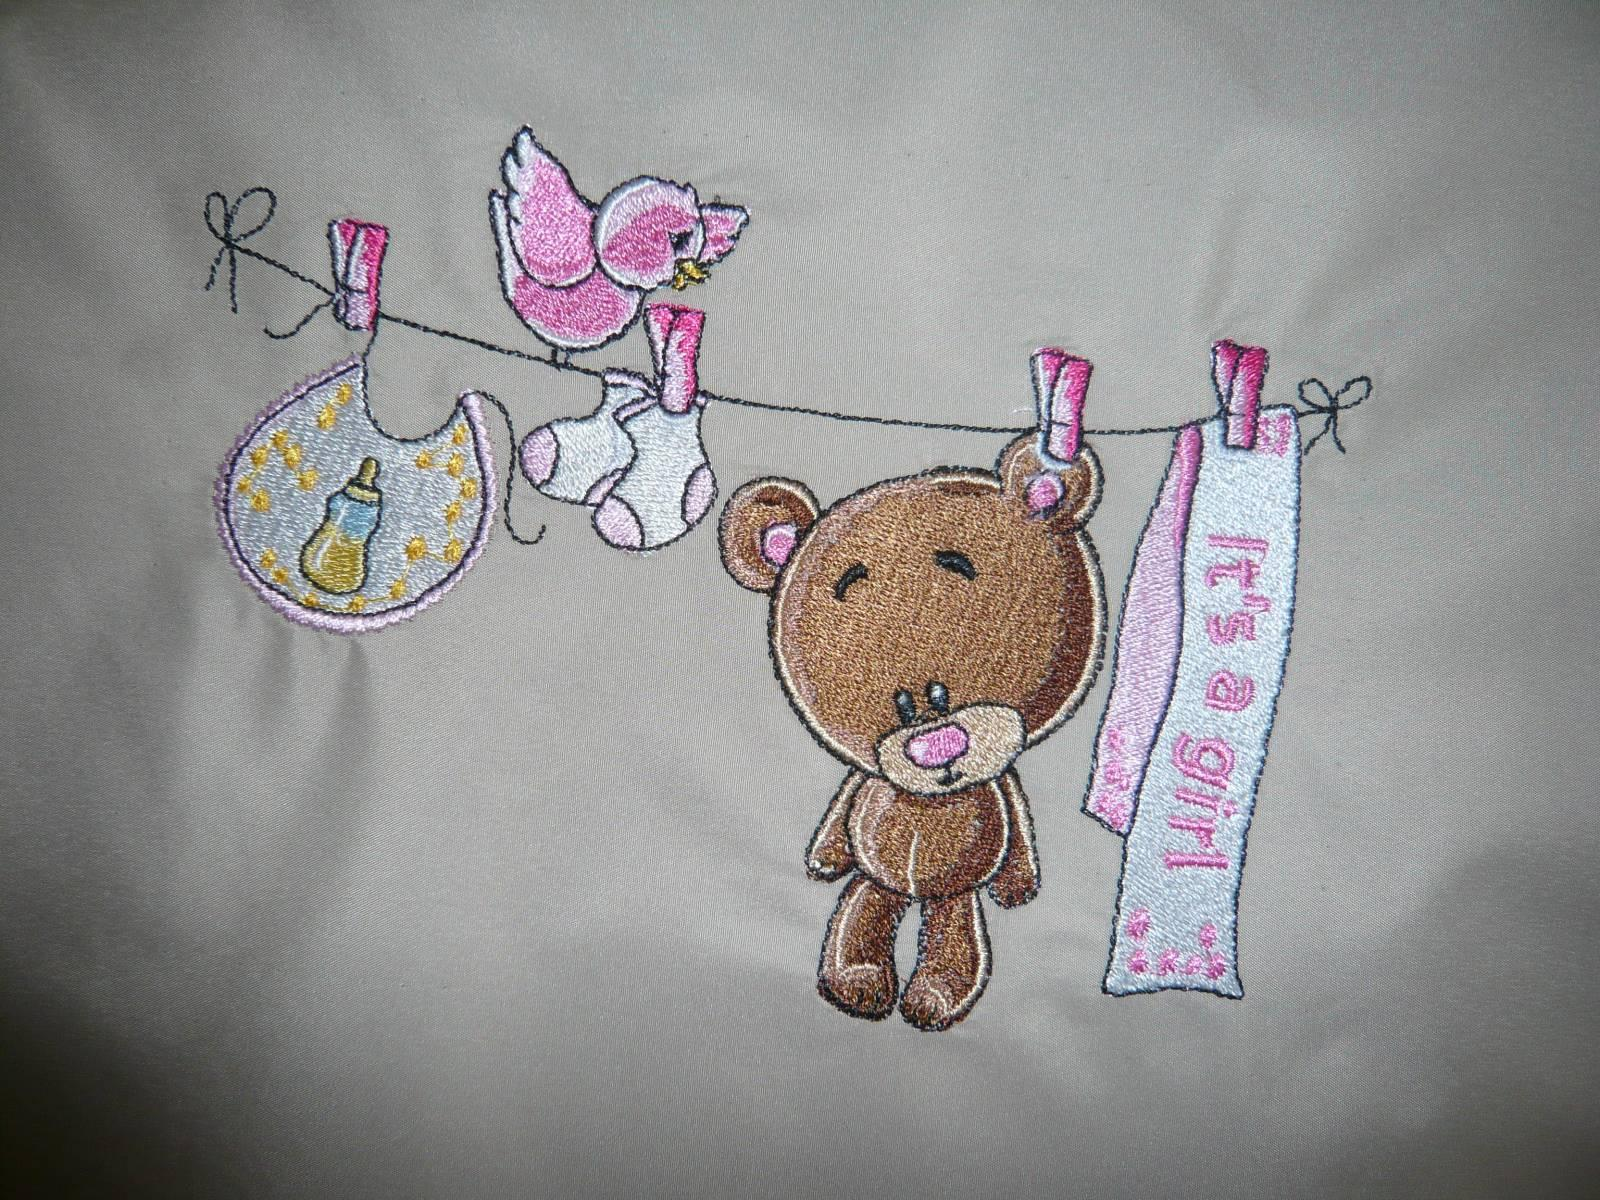 It's a girl machine embroidery design